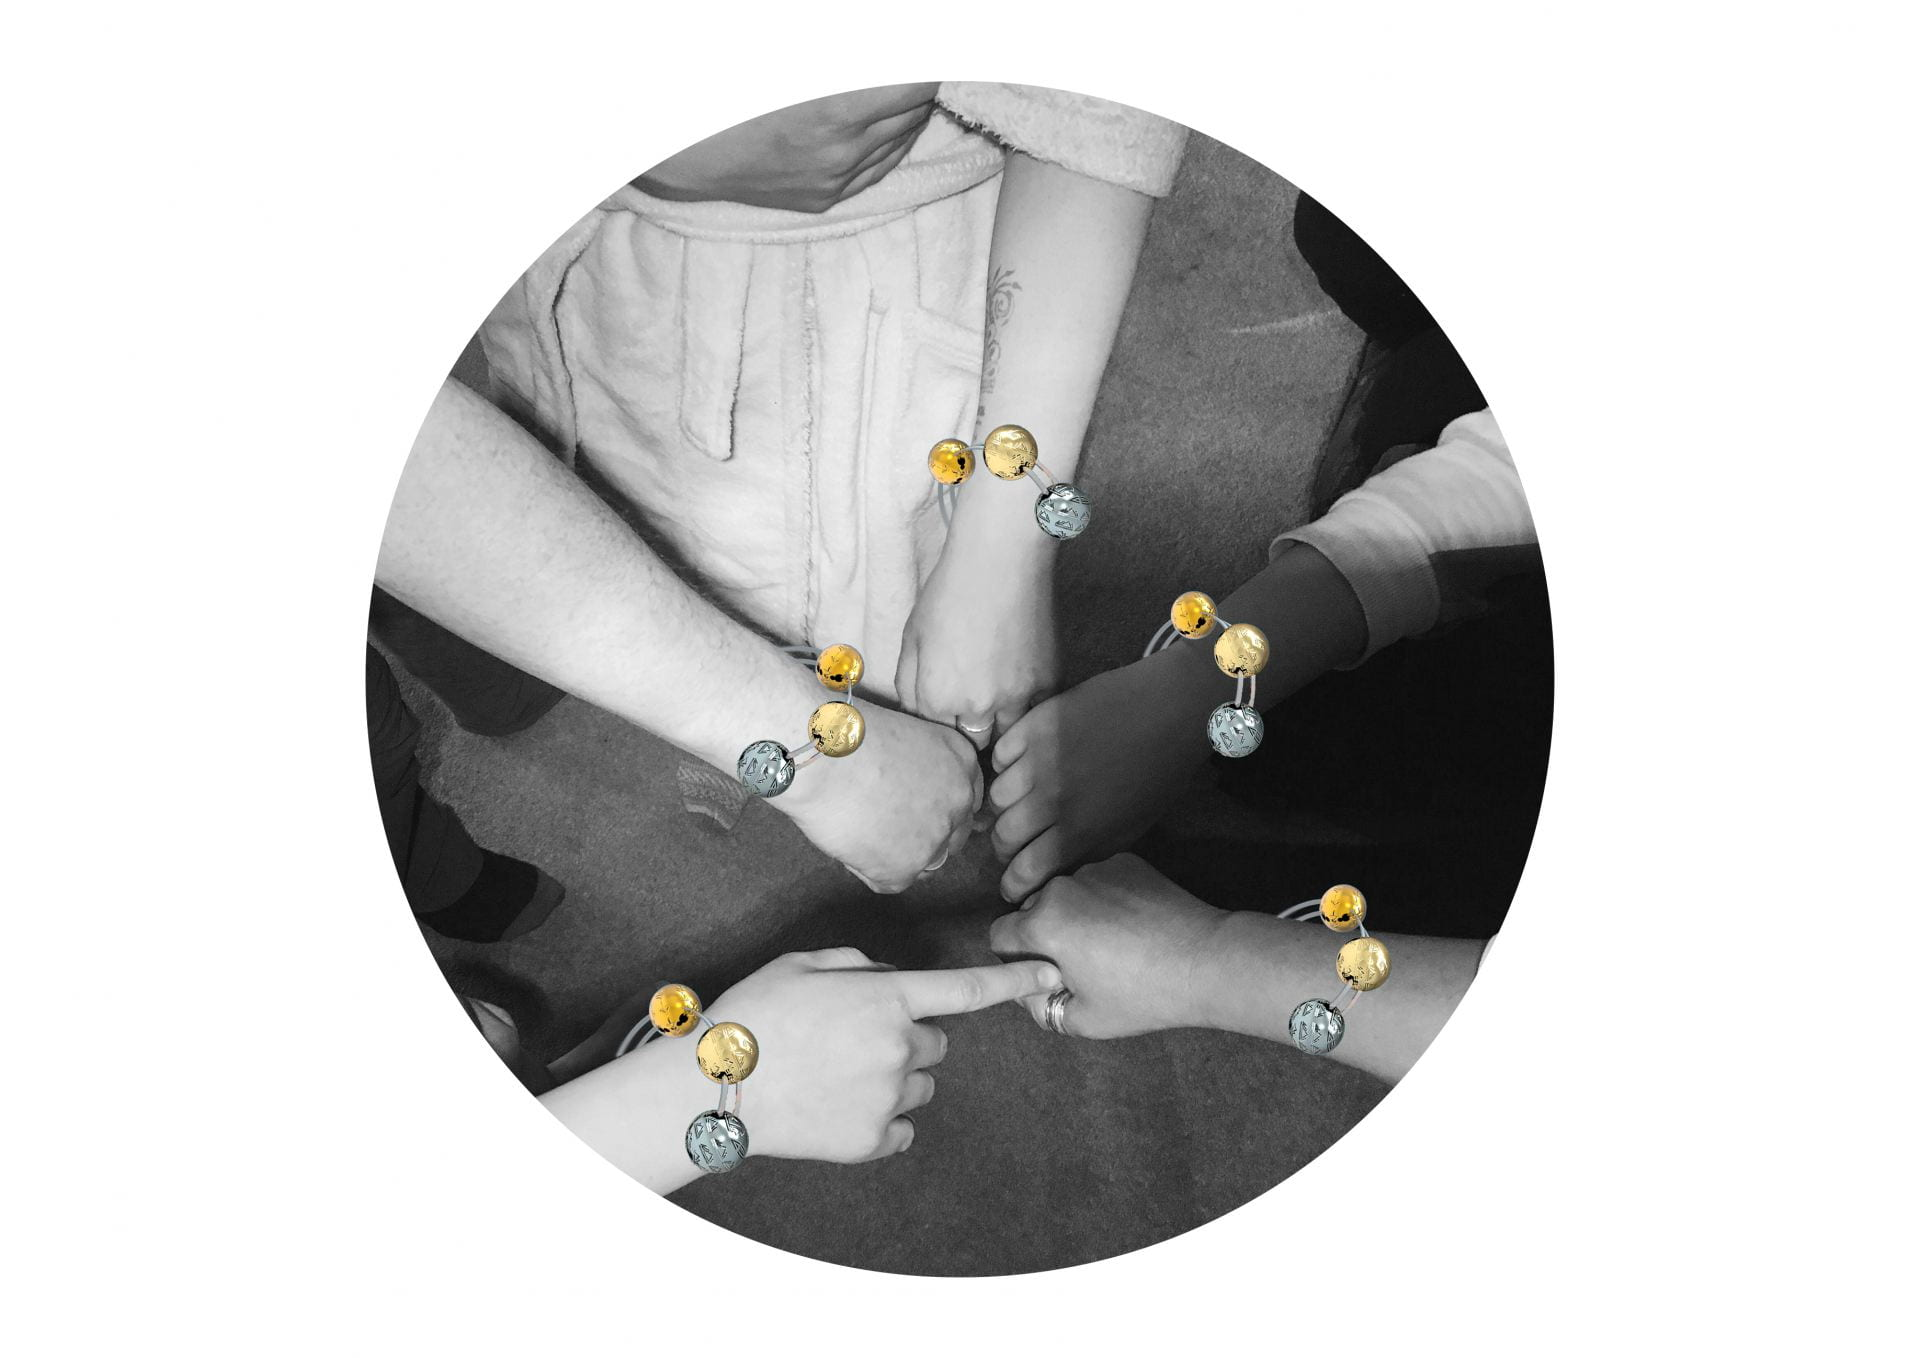 A black & white image of people's hands extended into the centre, with large coloured beads on each of their wrists.